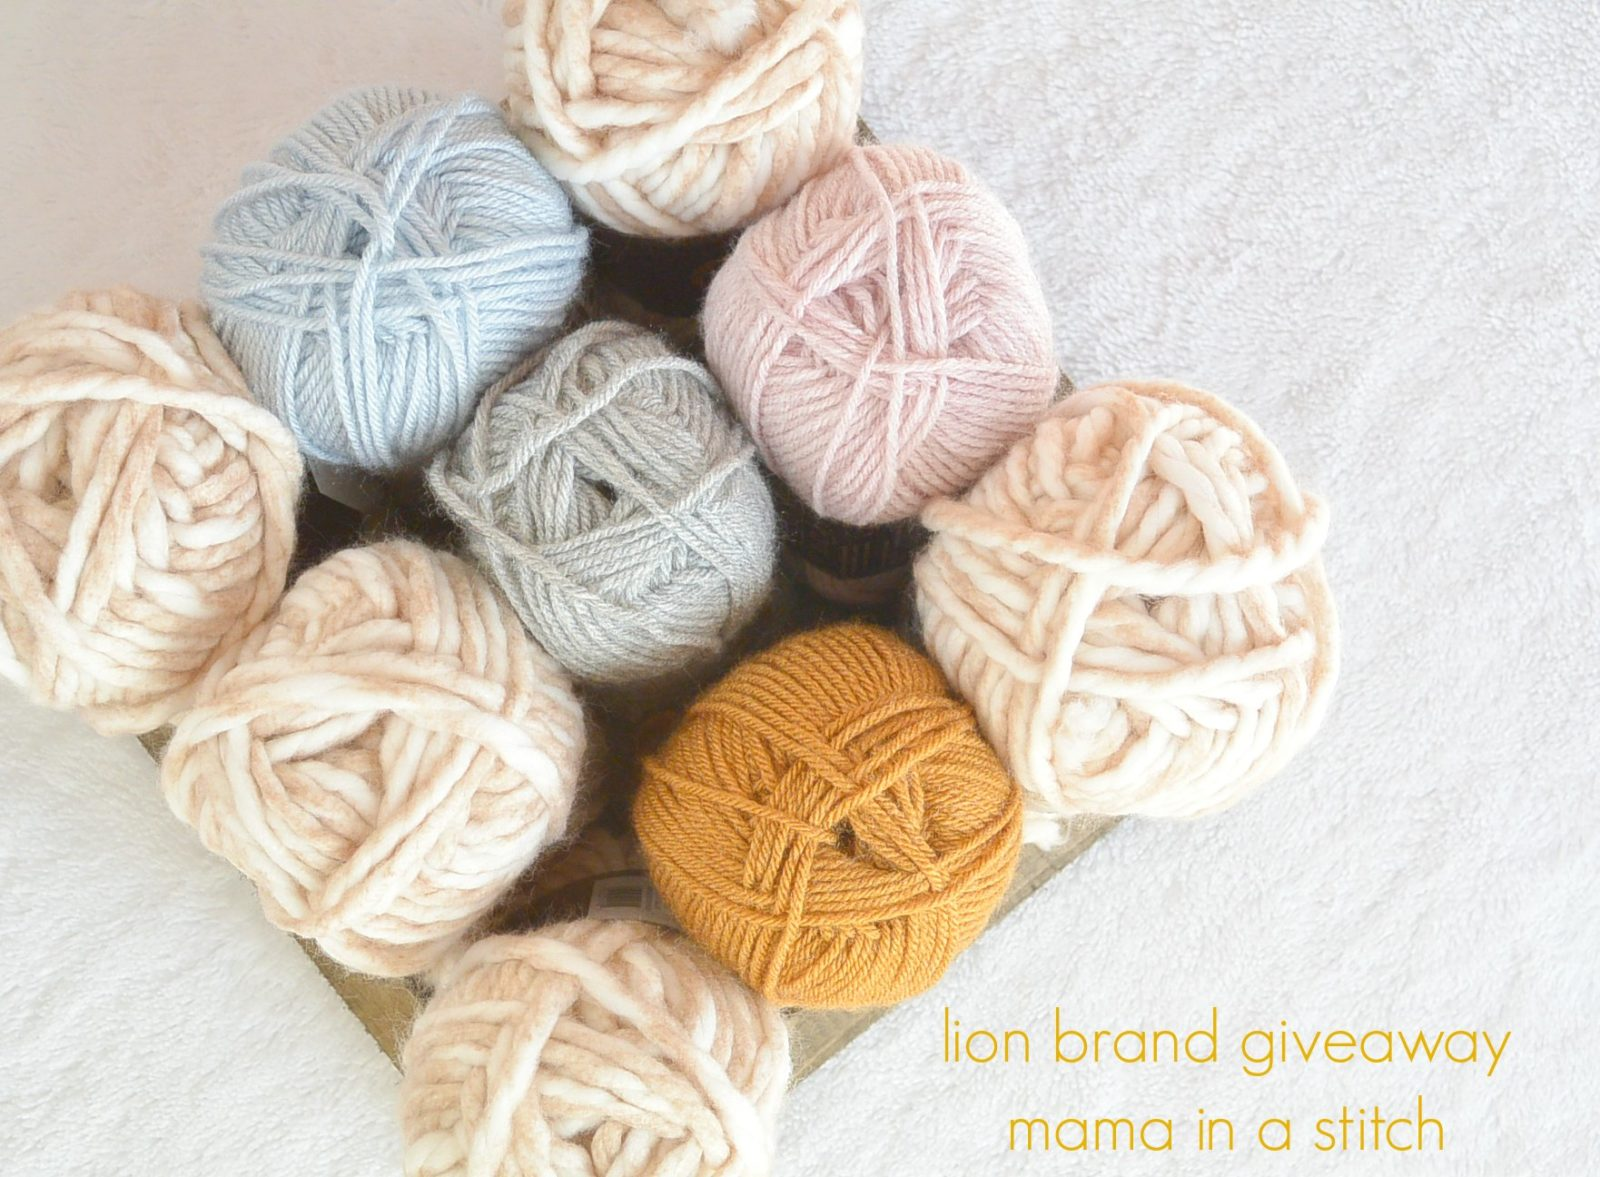 Lion brand cozy giveaway